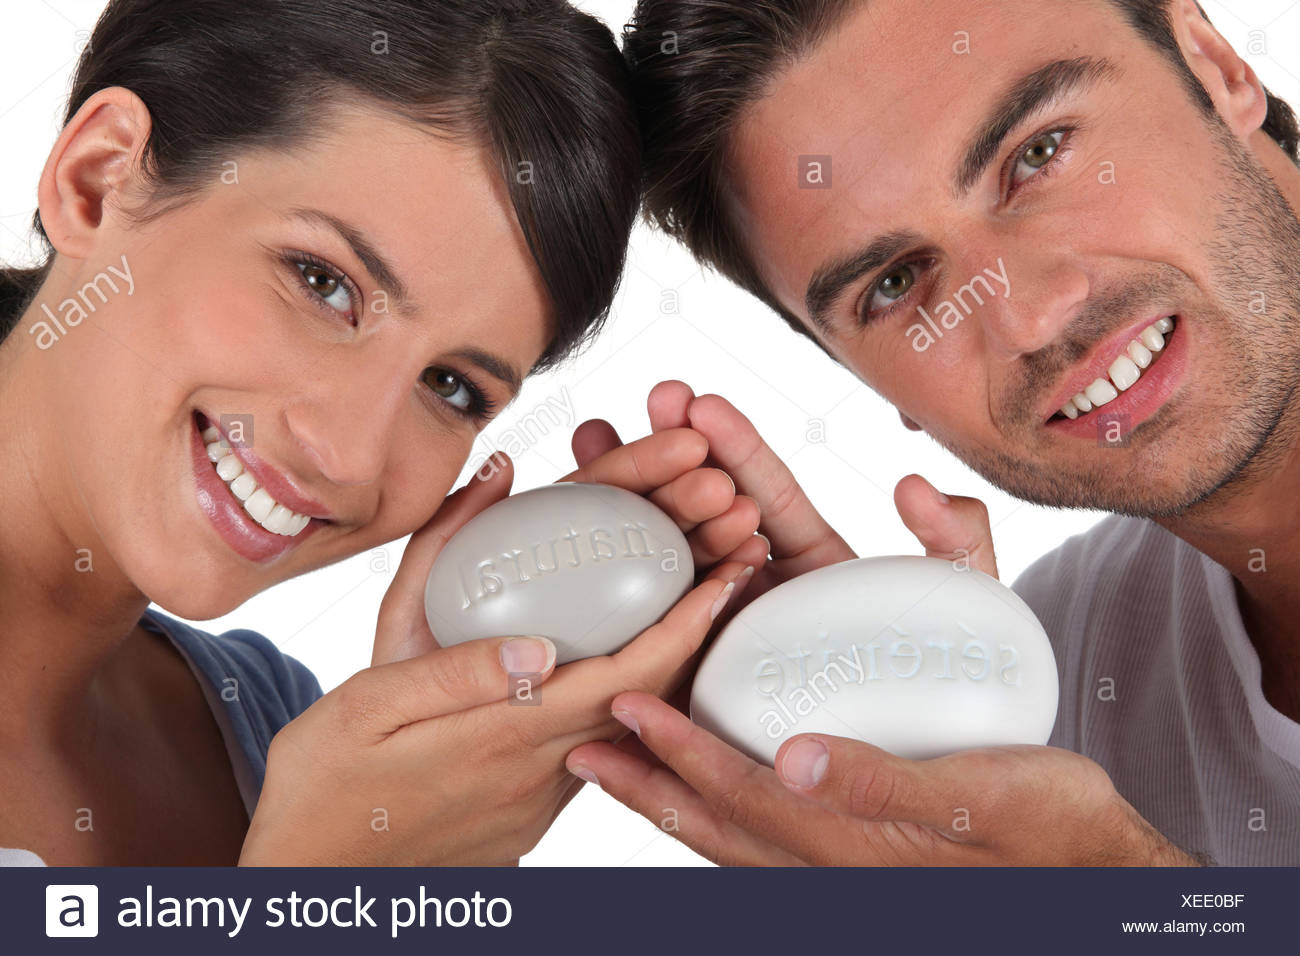 couple all smiles with bar of soap - Stock Image